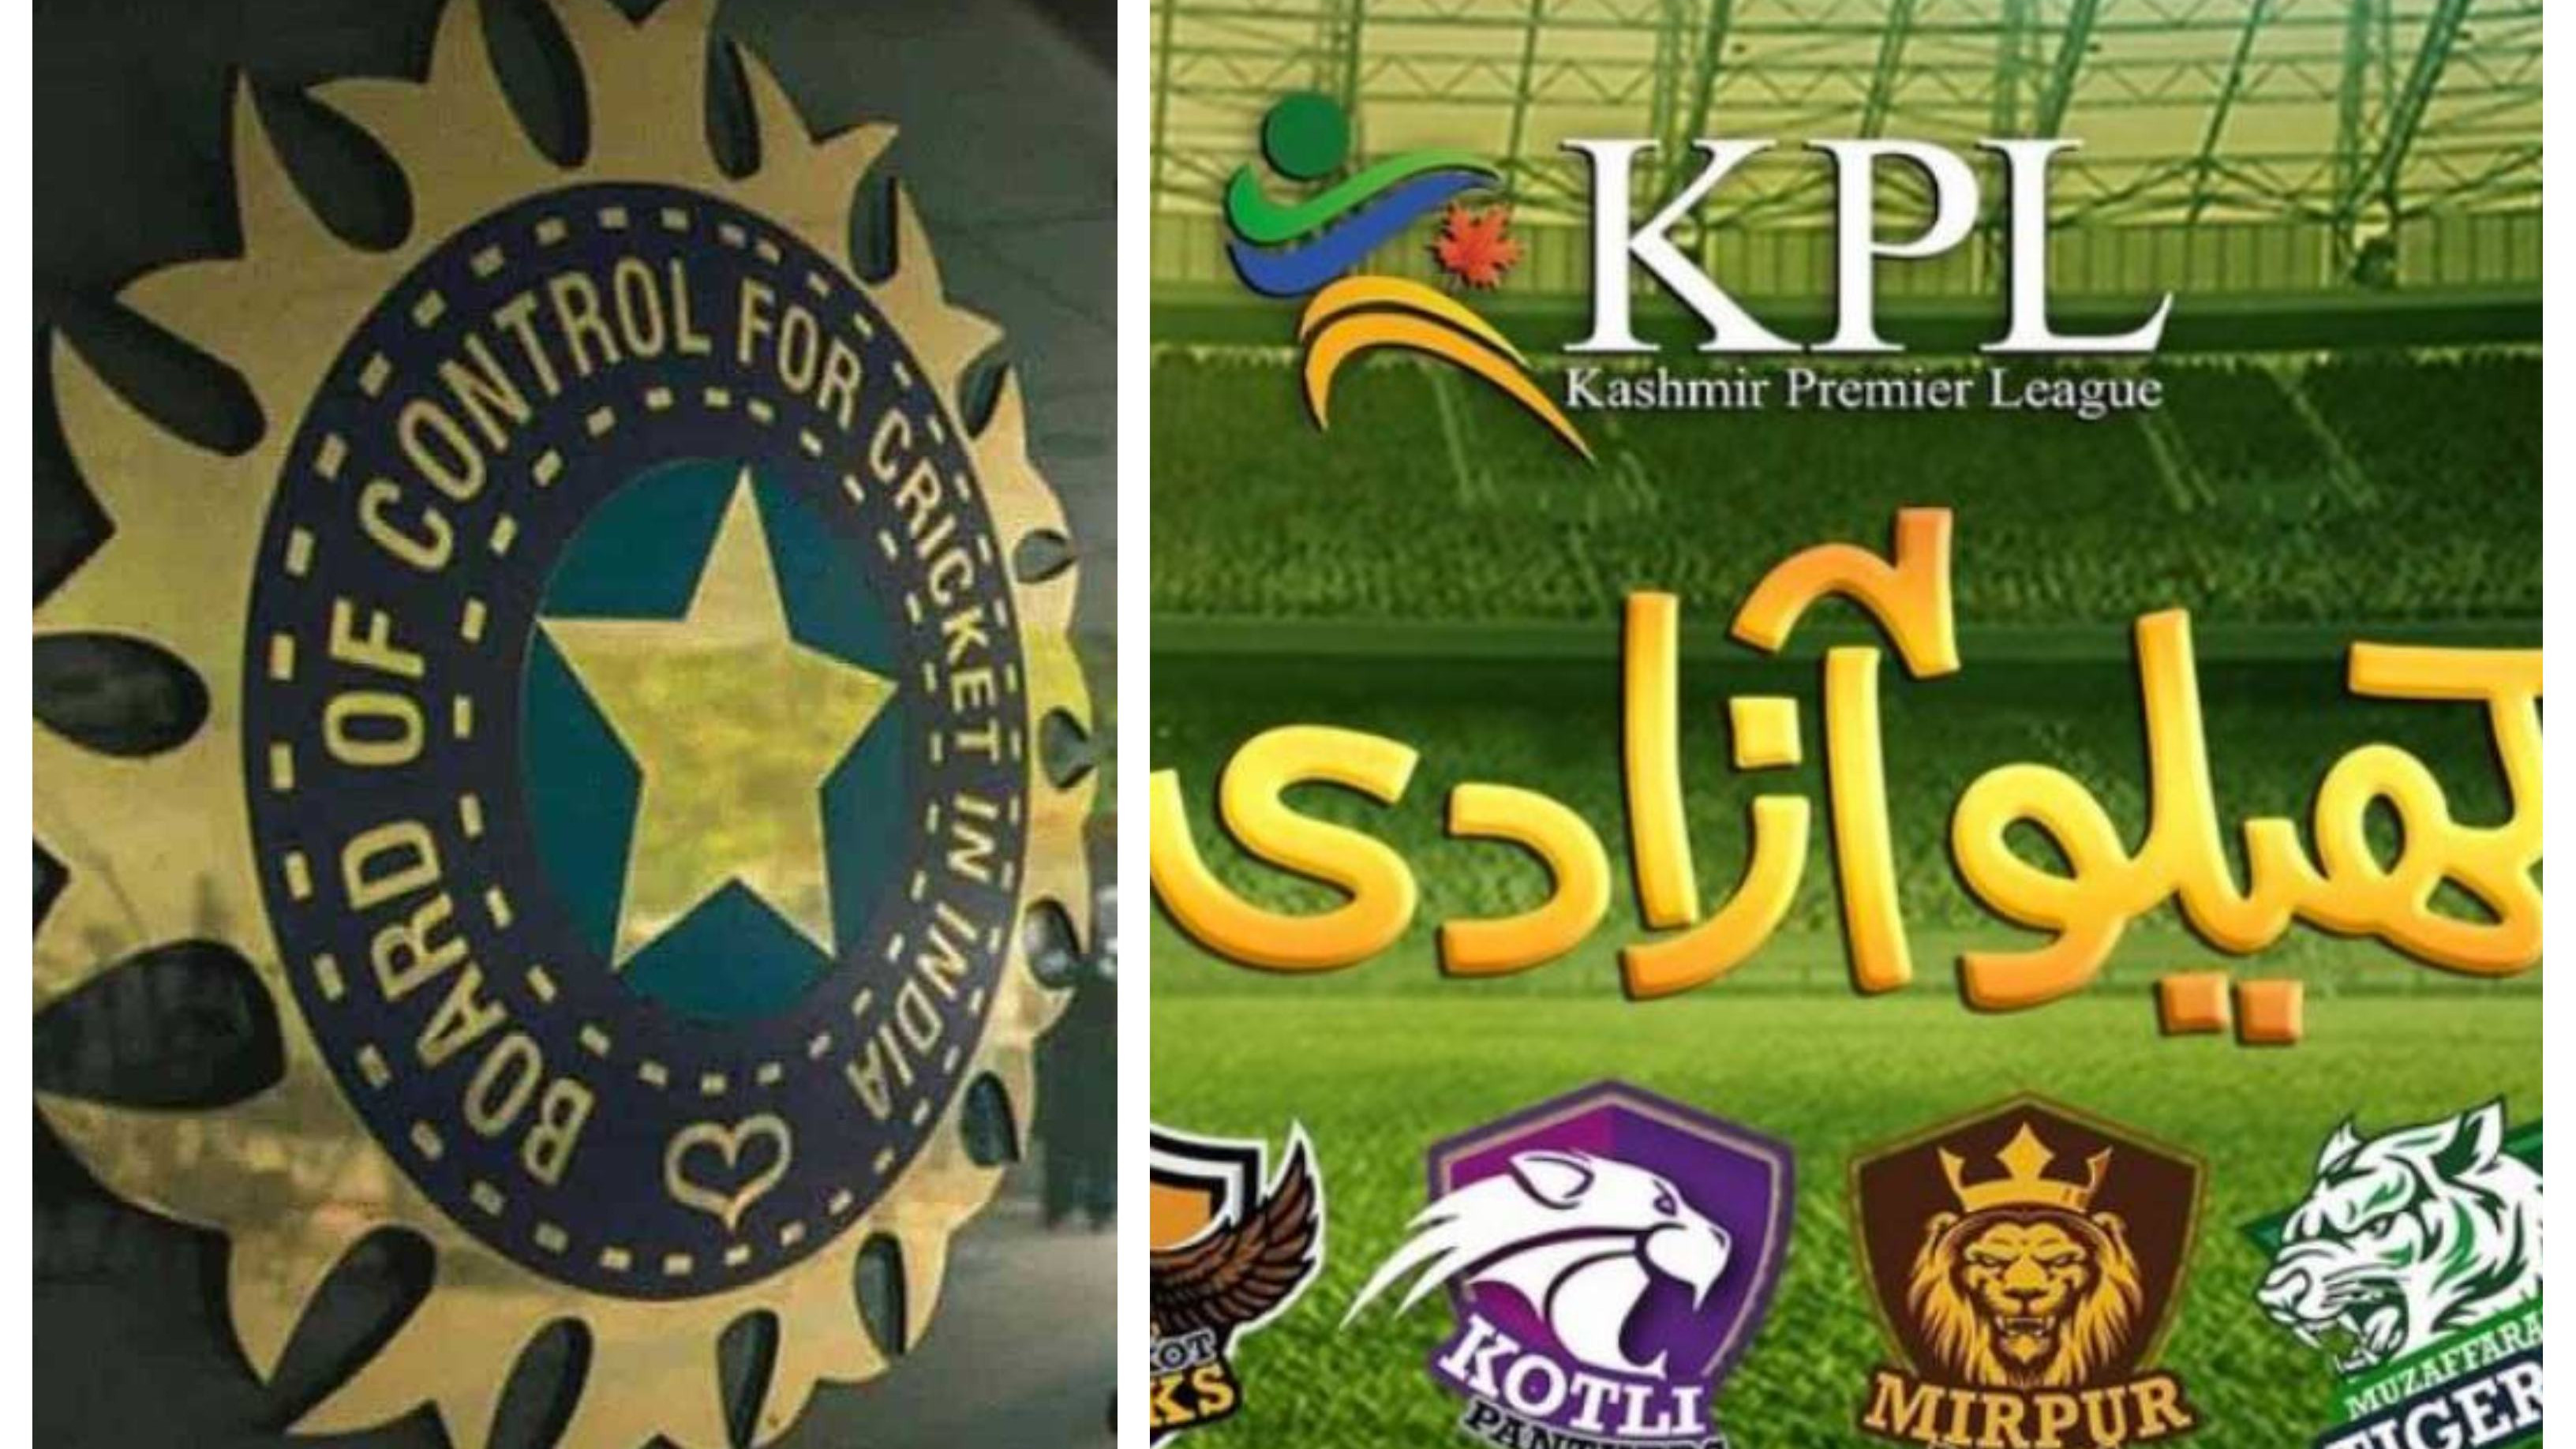 'They can't be part of any cricketing activity in India', BCCI's warning for those participating in PoK league